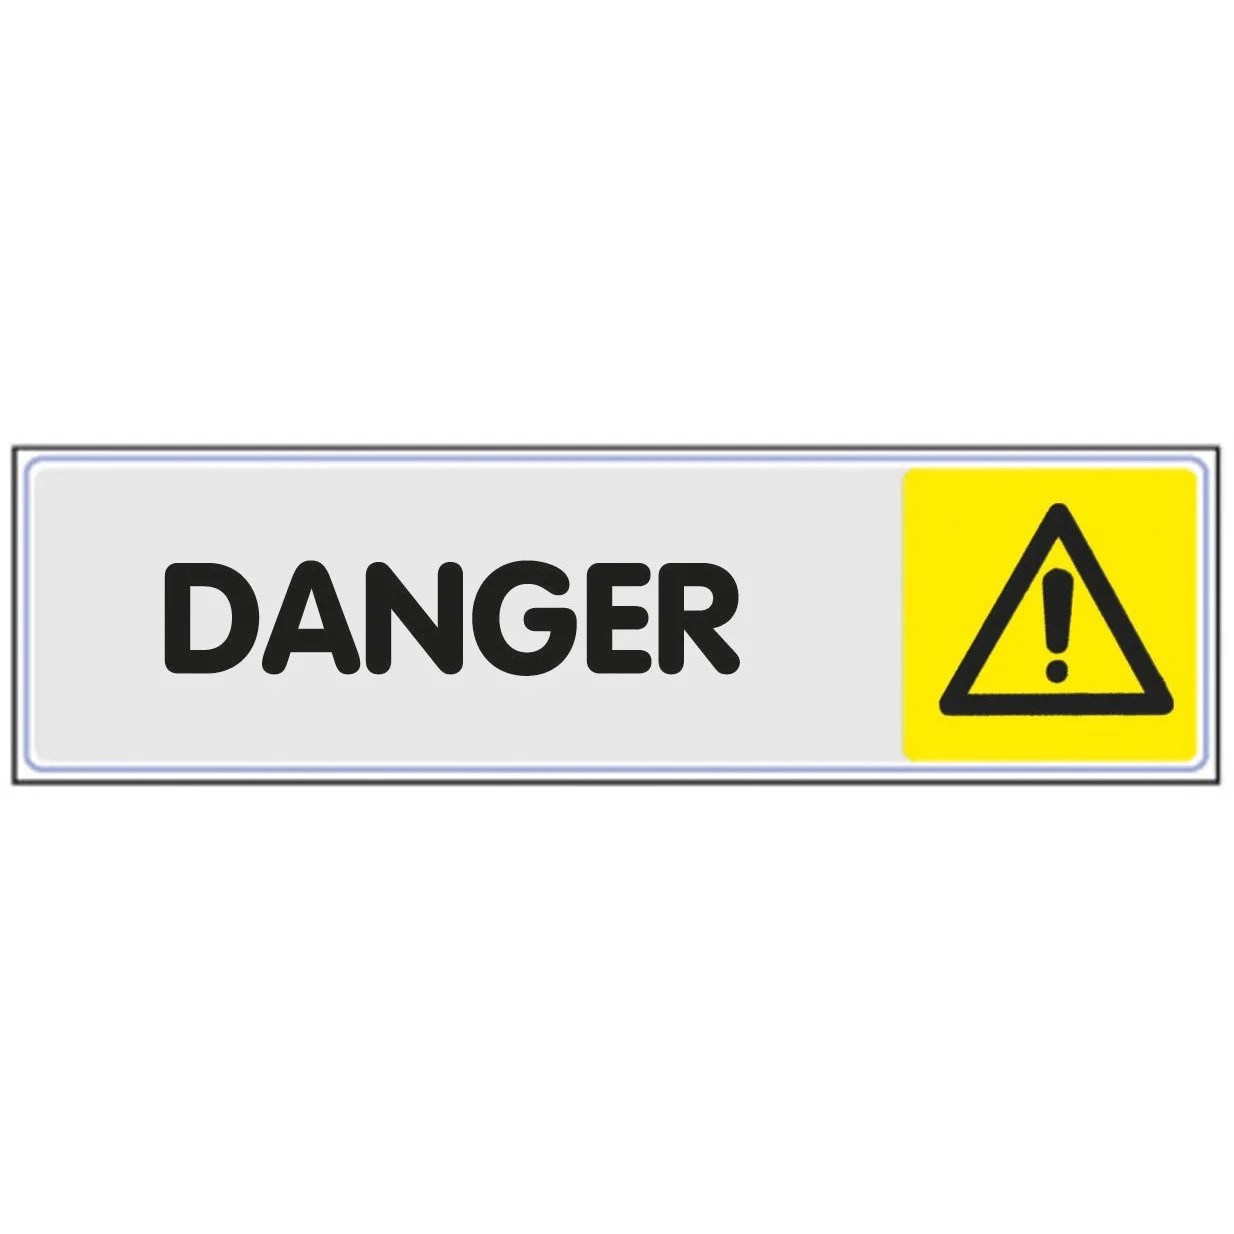 Plaque De Plexiglas Leroy Merlin Plaque Plexiglass Danger En Plastique Leroy Merlin